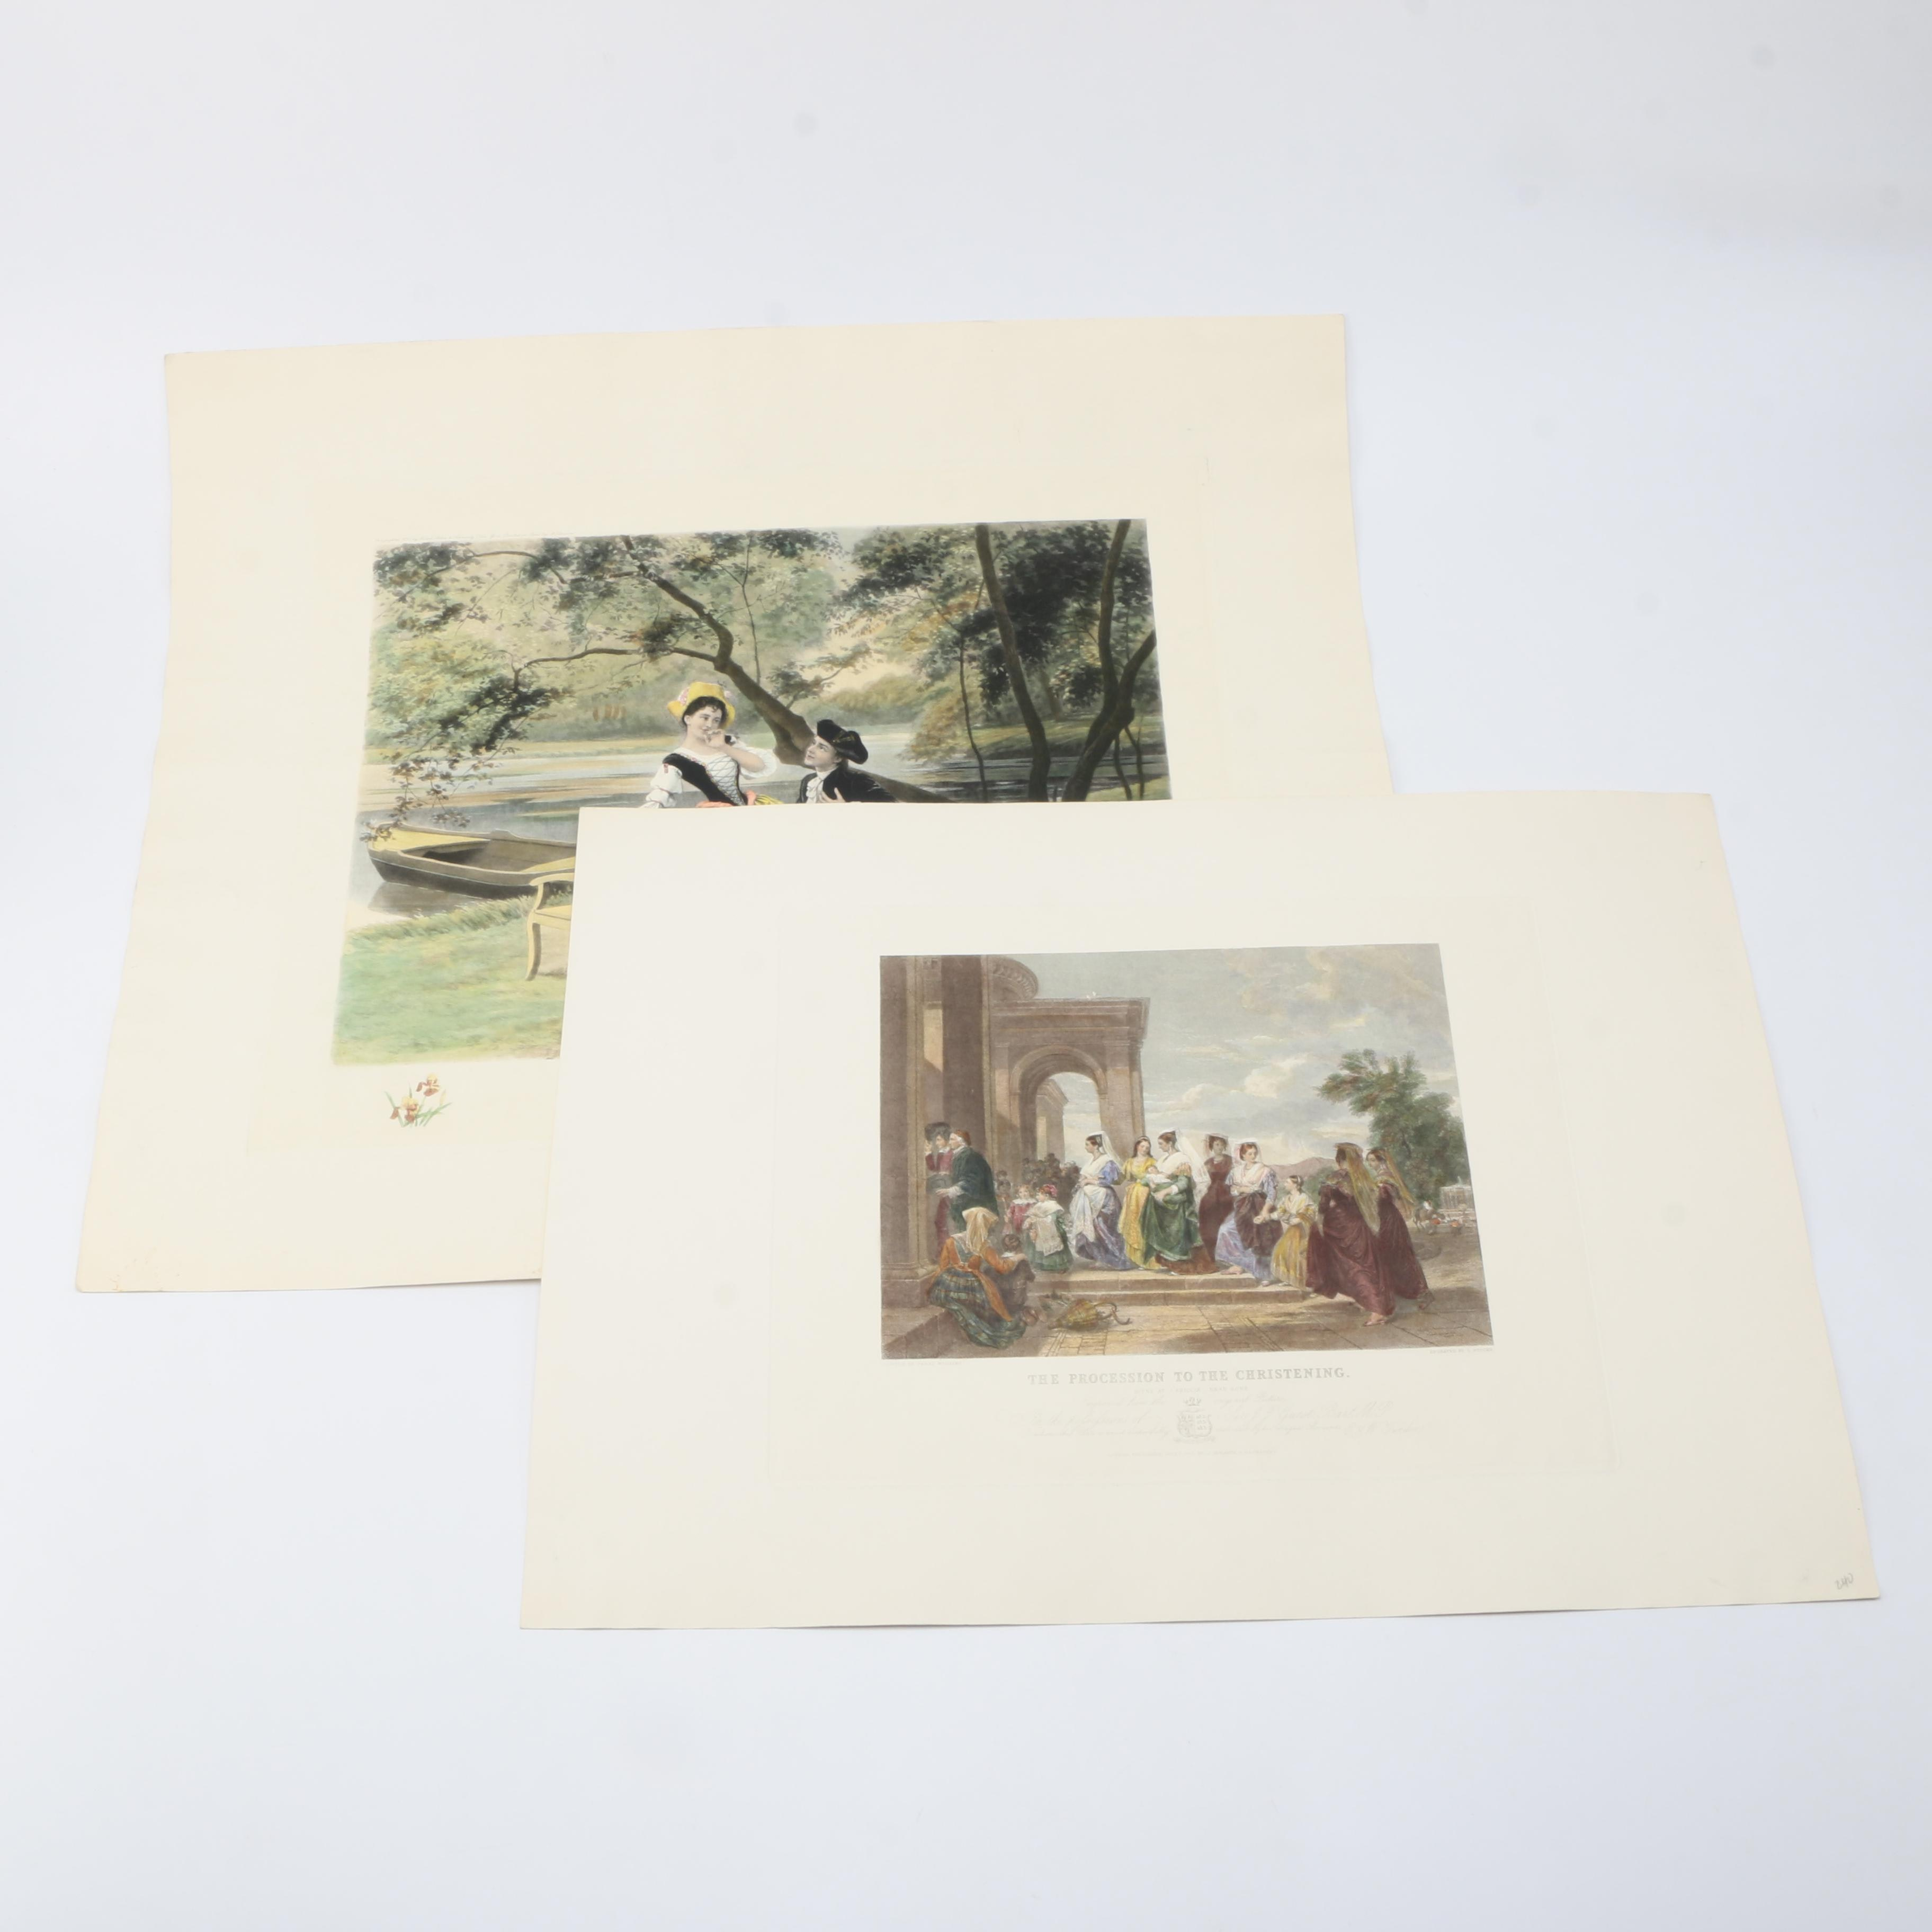 Hand-Colored Etchings of Aristocratic Life